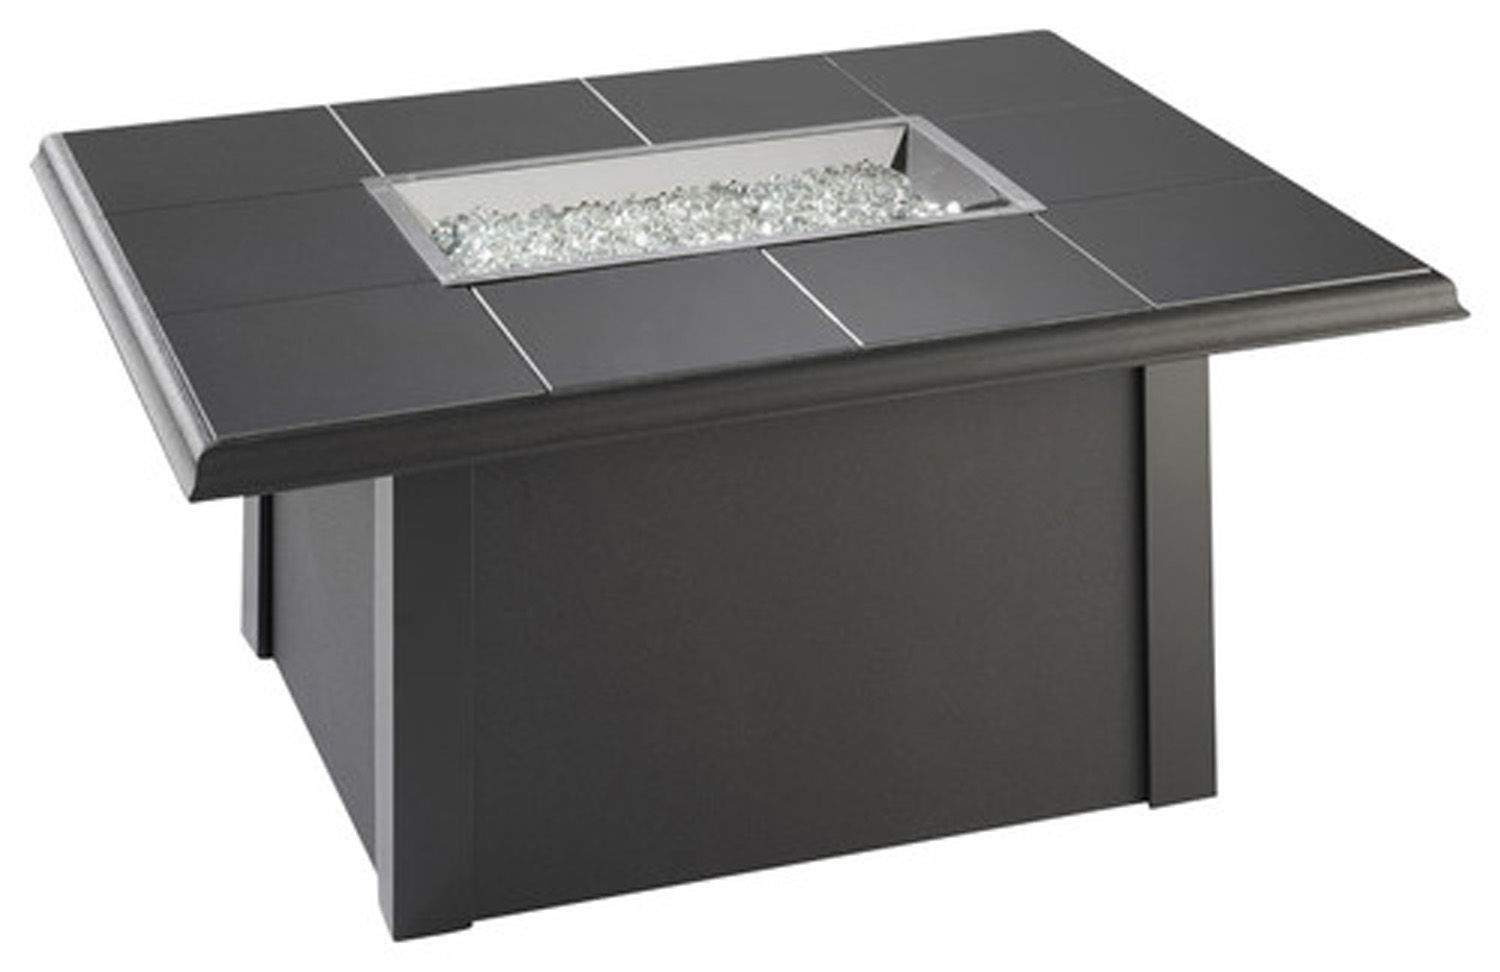 Outdoor Greatroom Napa Valley Gas Fire Pit Coffee Table With Black Metal Base N Ebay